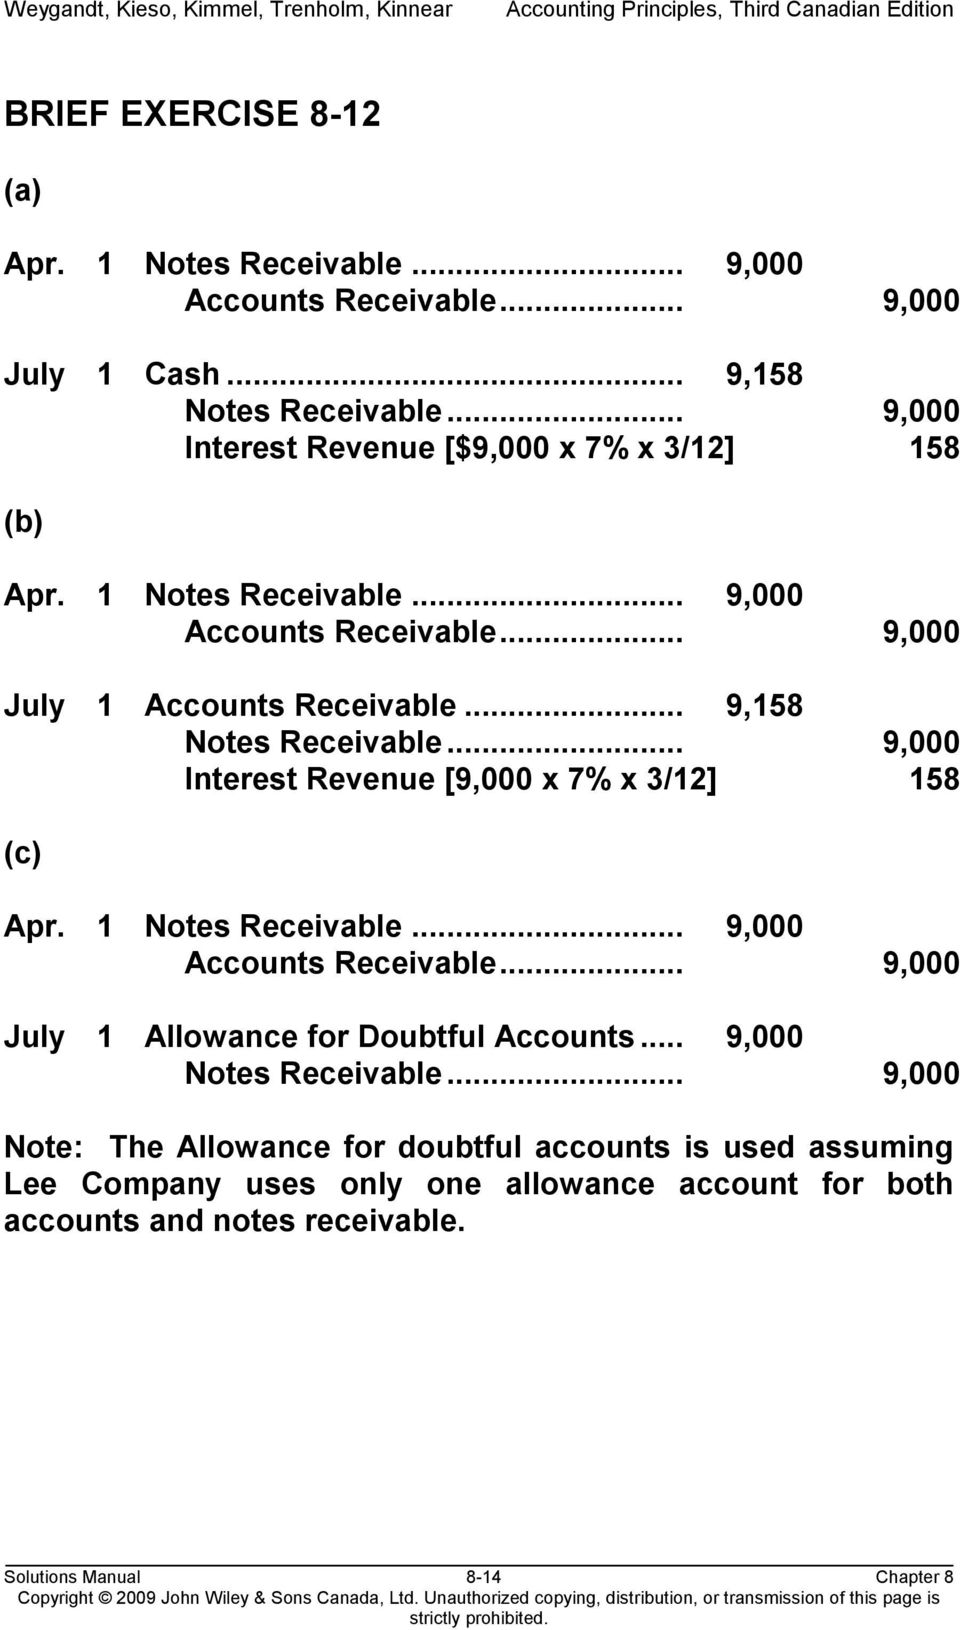 .. 9,158 Notes Receivable... 9,000 Interest Revenue [9,000 x 7% x 3/12] 158 (c) Apr. 1 Notes Receivable... 9,000 Accounts Receivable.